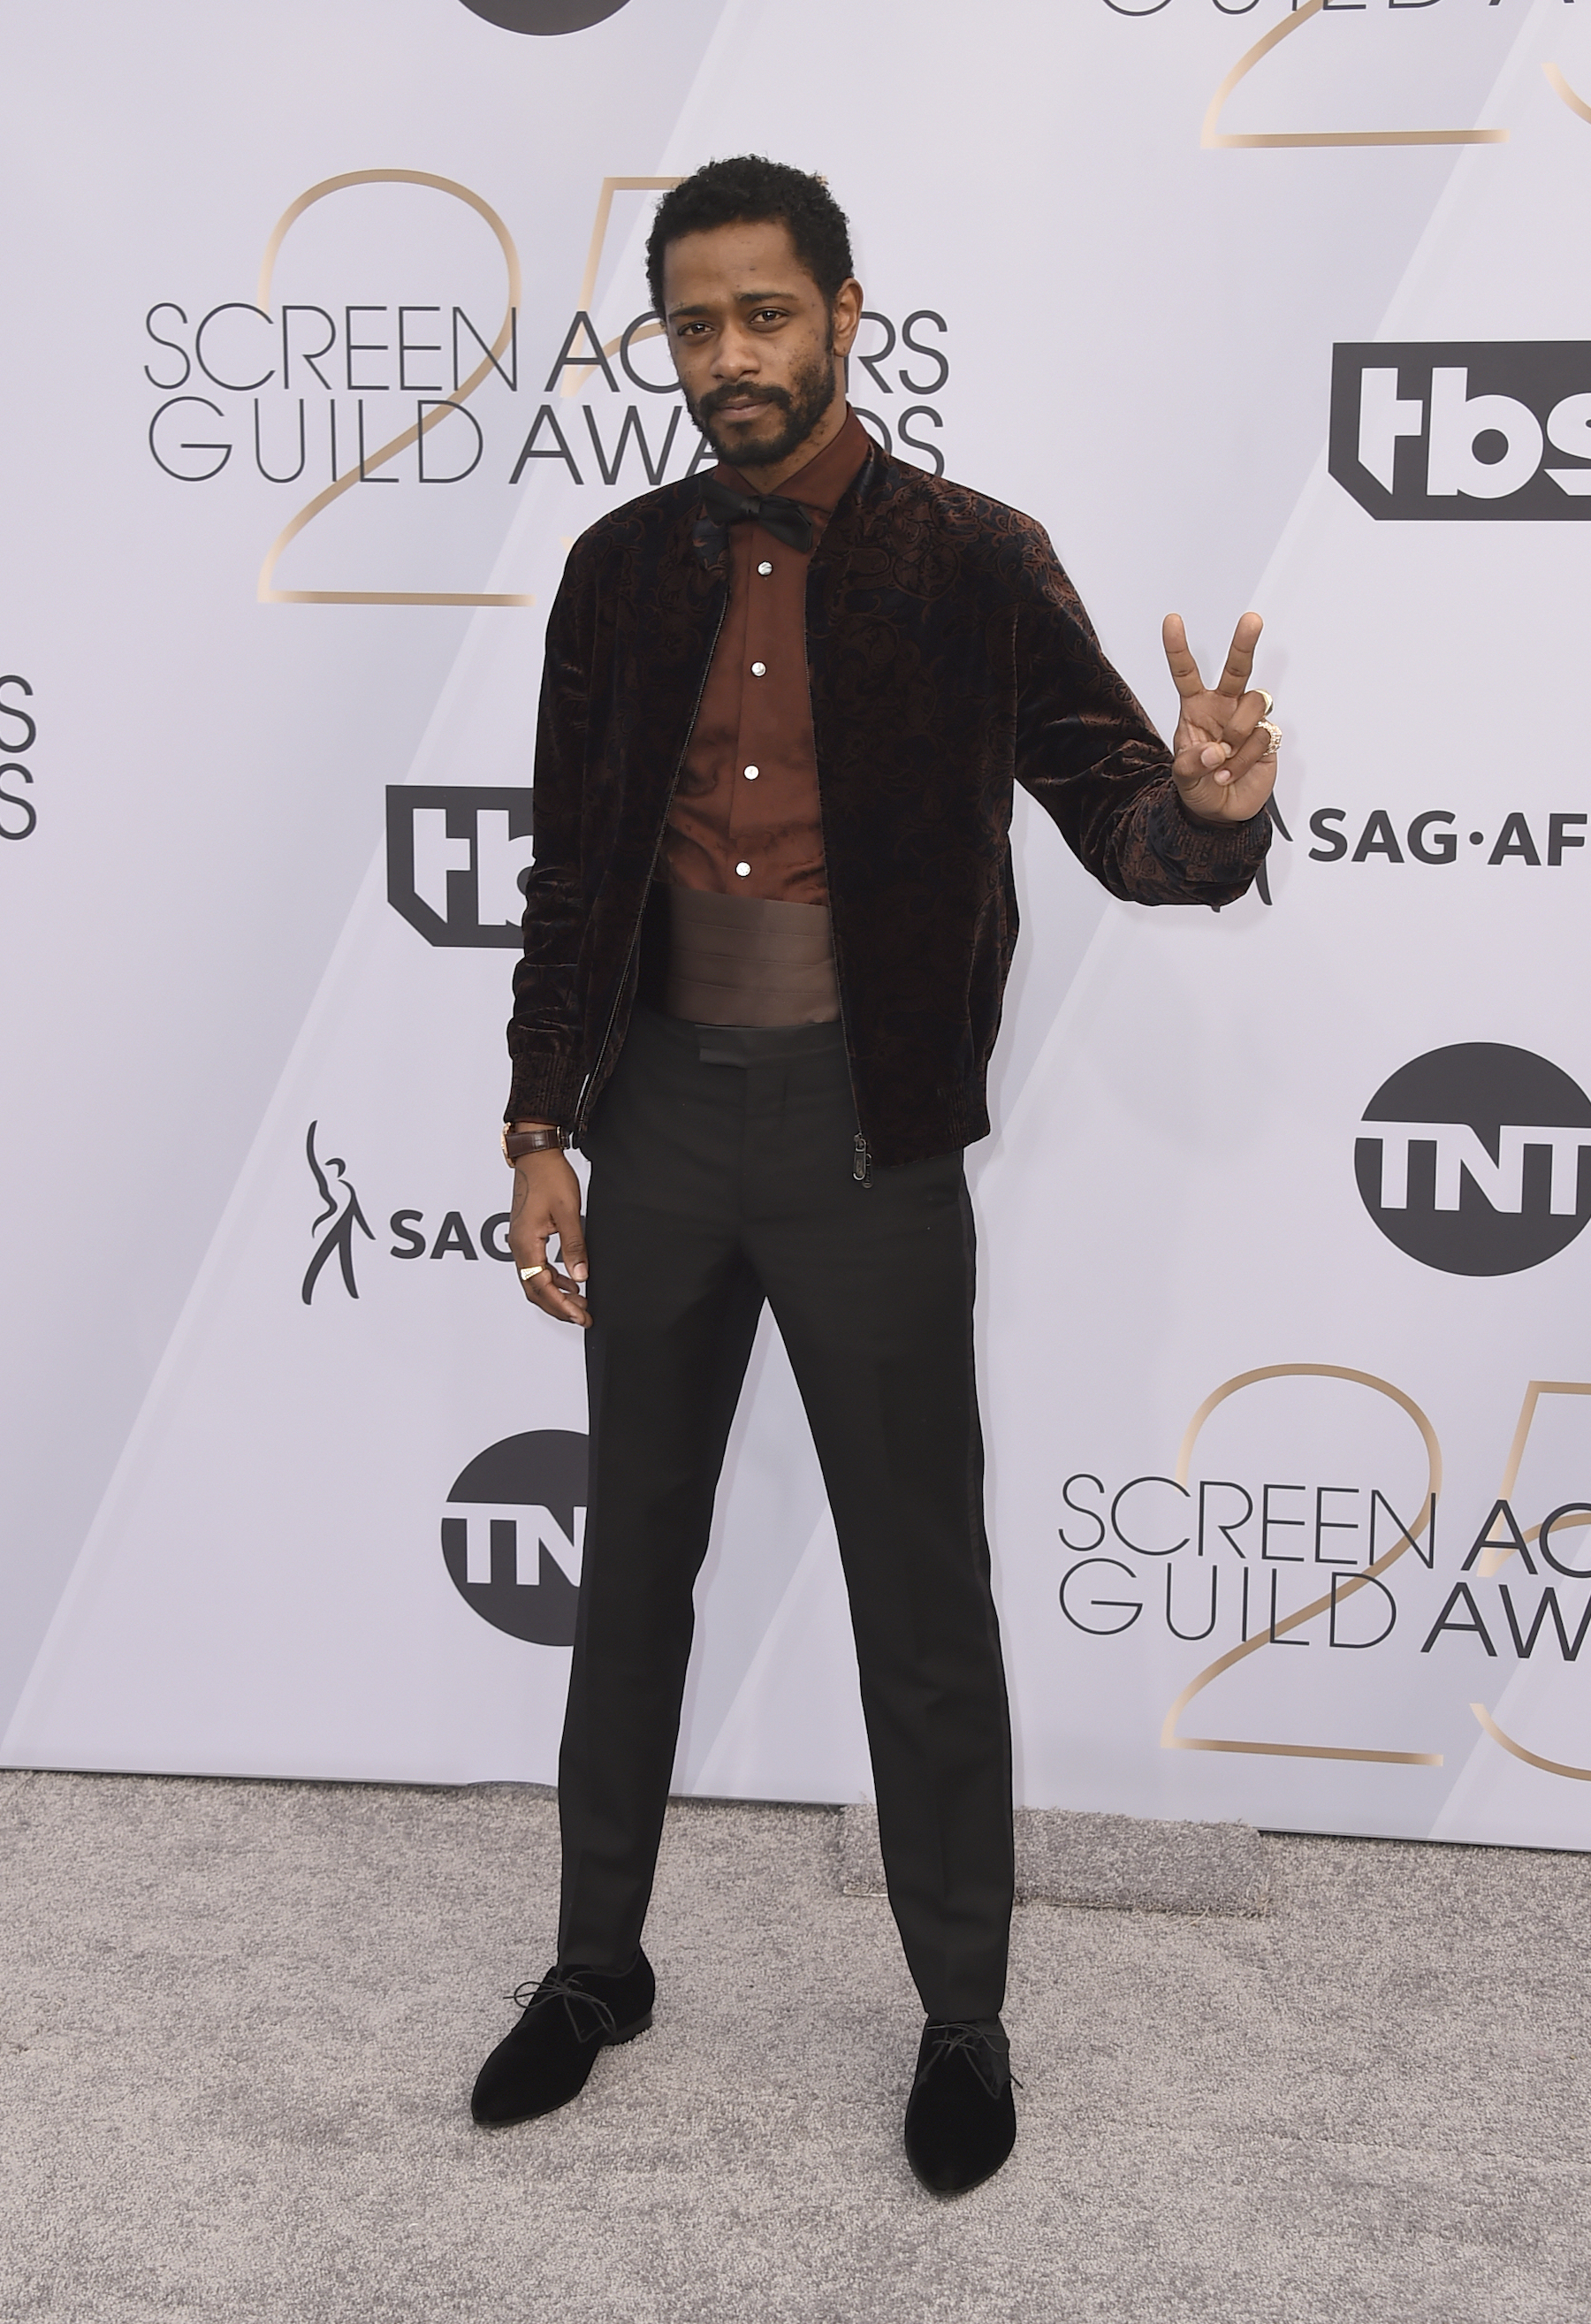 <div class='meta'><div class='origin-logo' data-origin='AP'></div><span class='caption-text' data-credit='Jordan Strauss/Invision/AP'>Lakeith Stanfield arrives at the 25th annual Screen Actors Guild Awards at the Shrine Auditorium & Expo Hall on Sunday, Jan. 27, 2019, in Los Angeles.</span></div>